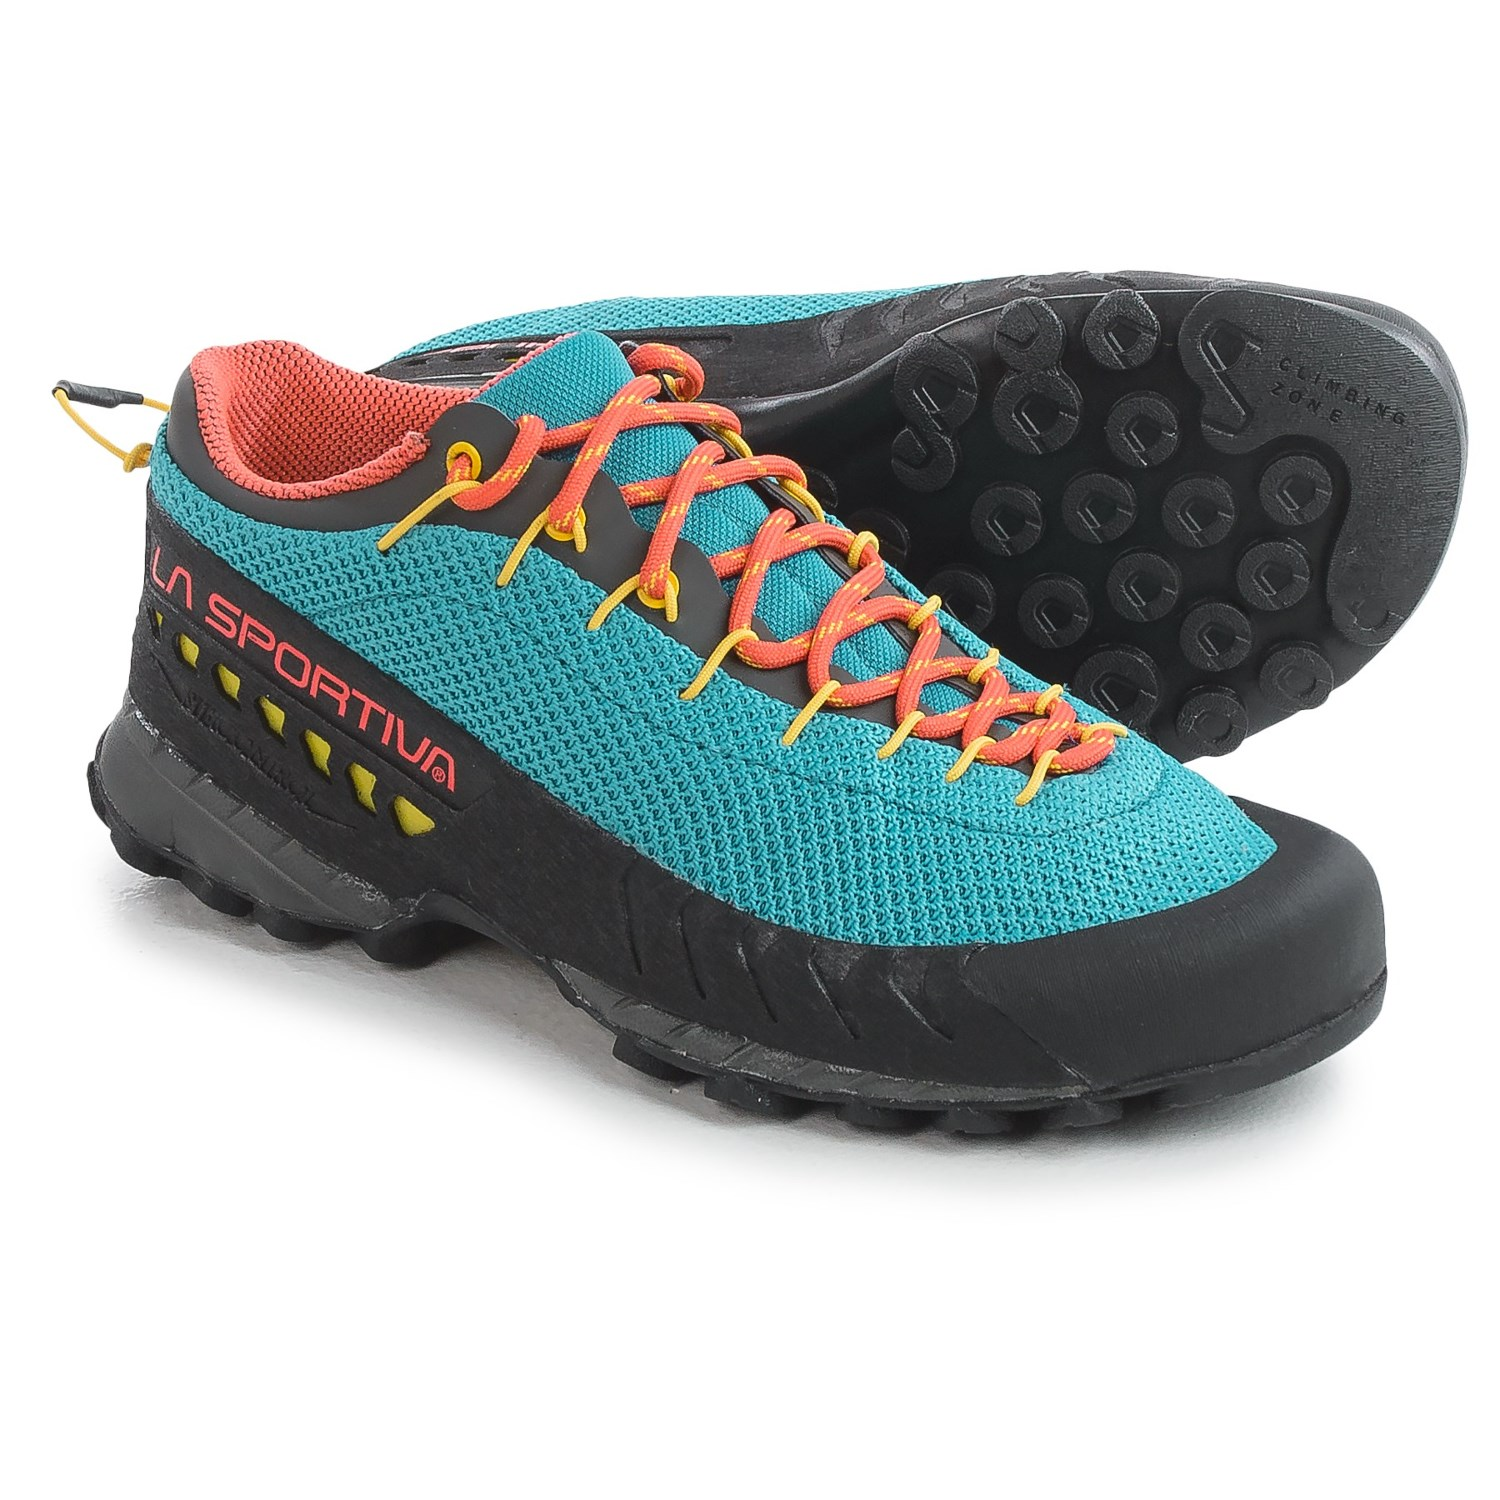 la sportiva tx3 approach shoes for women   save 46